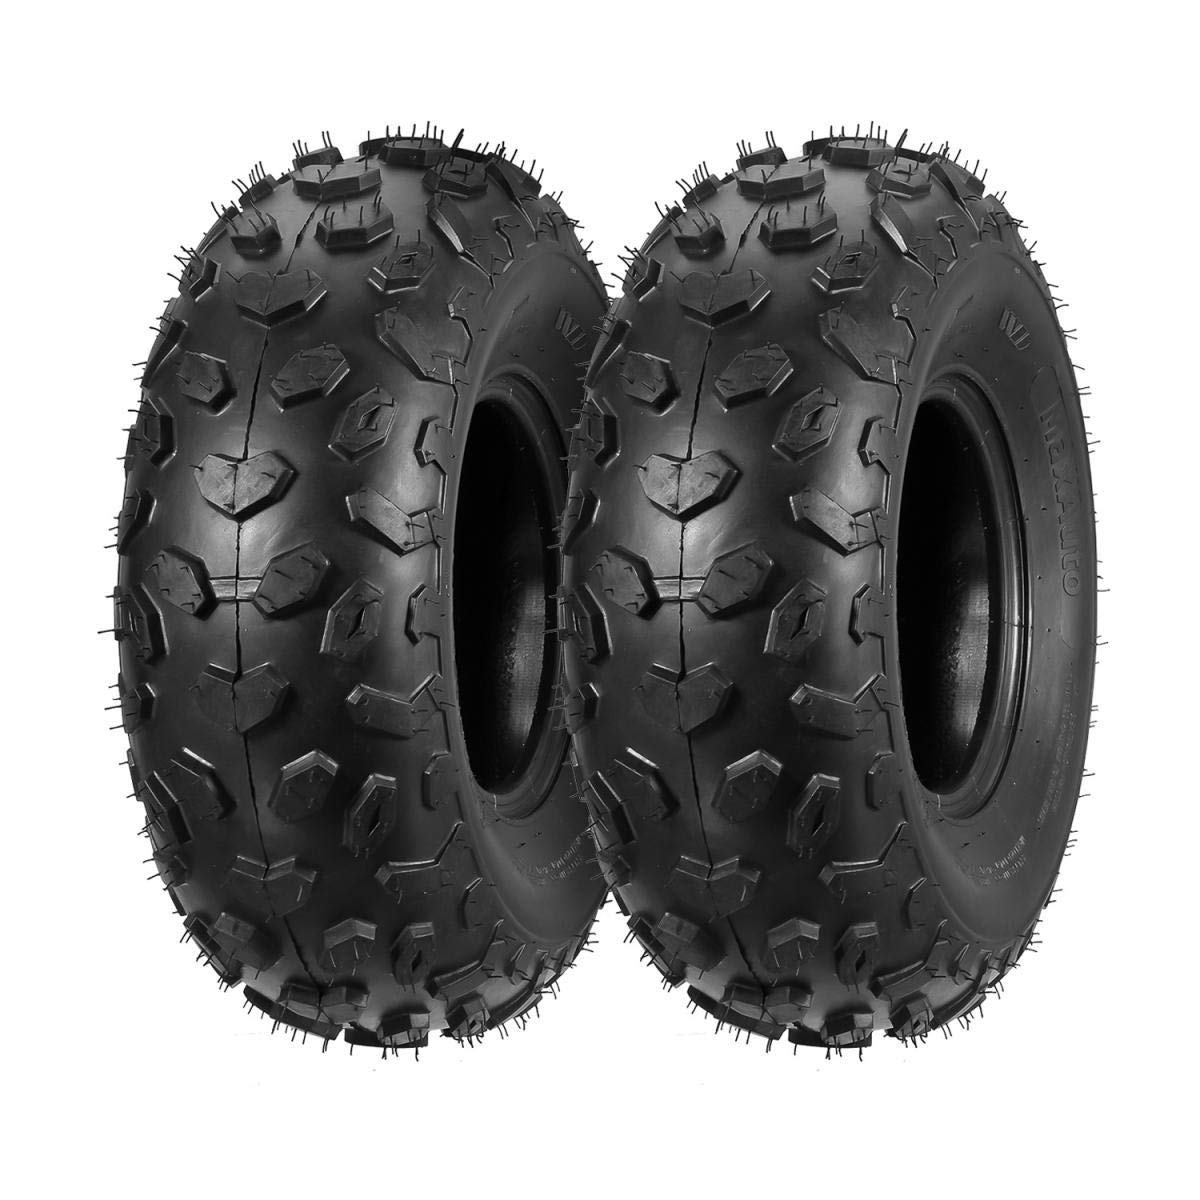 Set of 2 Sport ATV Tires 19x7-8 19x7x8 19 7 8 4PR Load range B 28J by MaxAuto